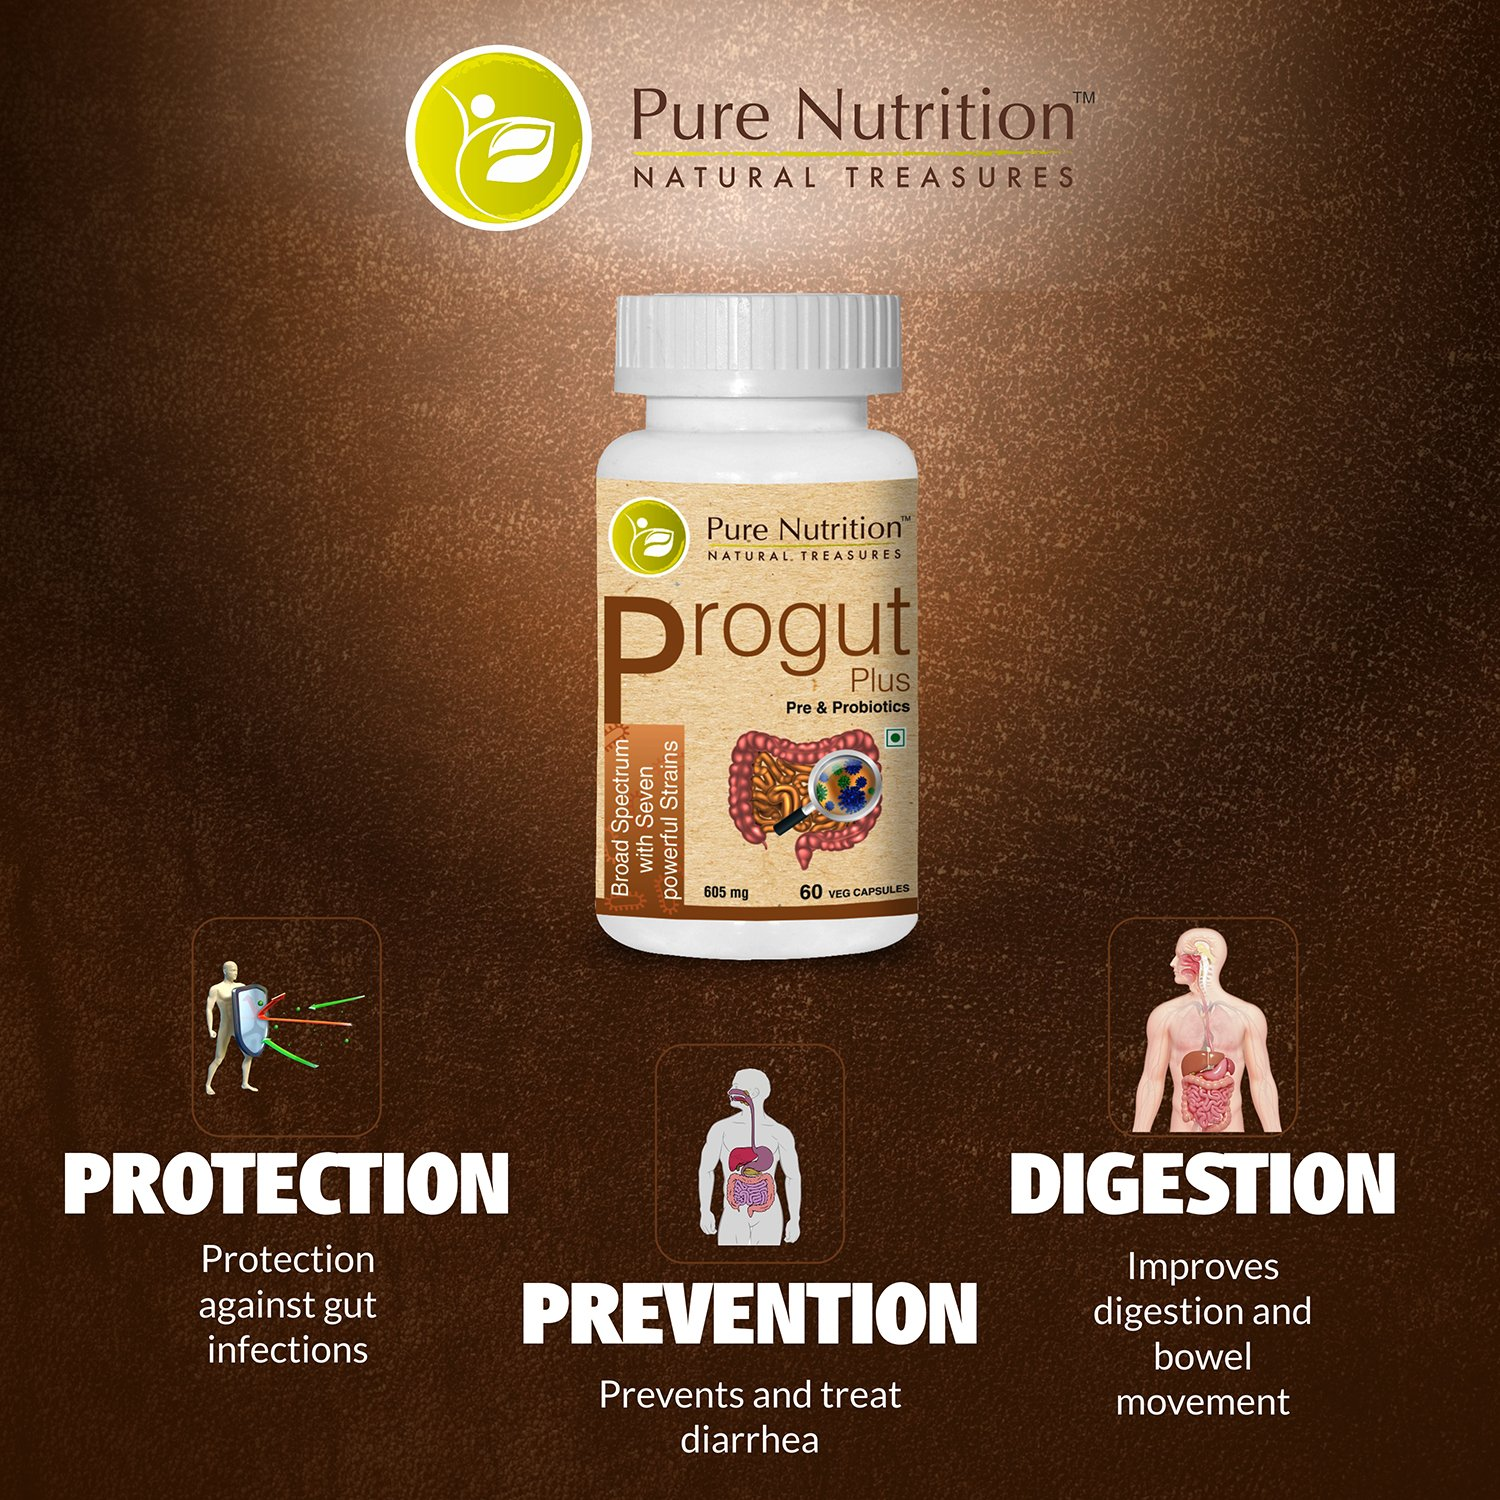 Amazon.com: Pure Nutrition Progut Plus - Powerful blend of Pre and ...